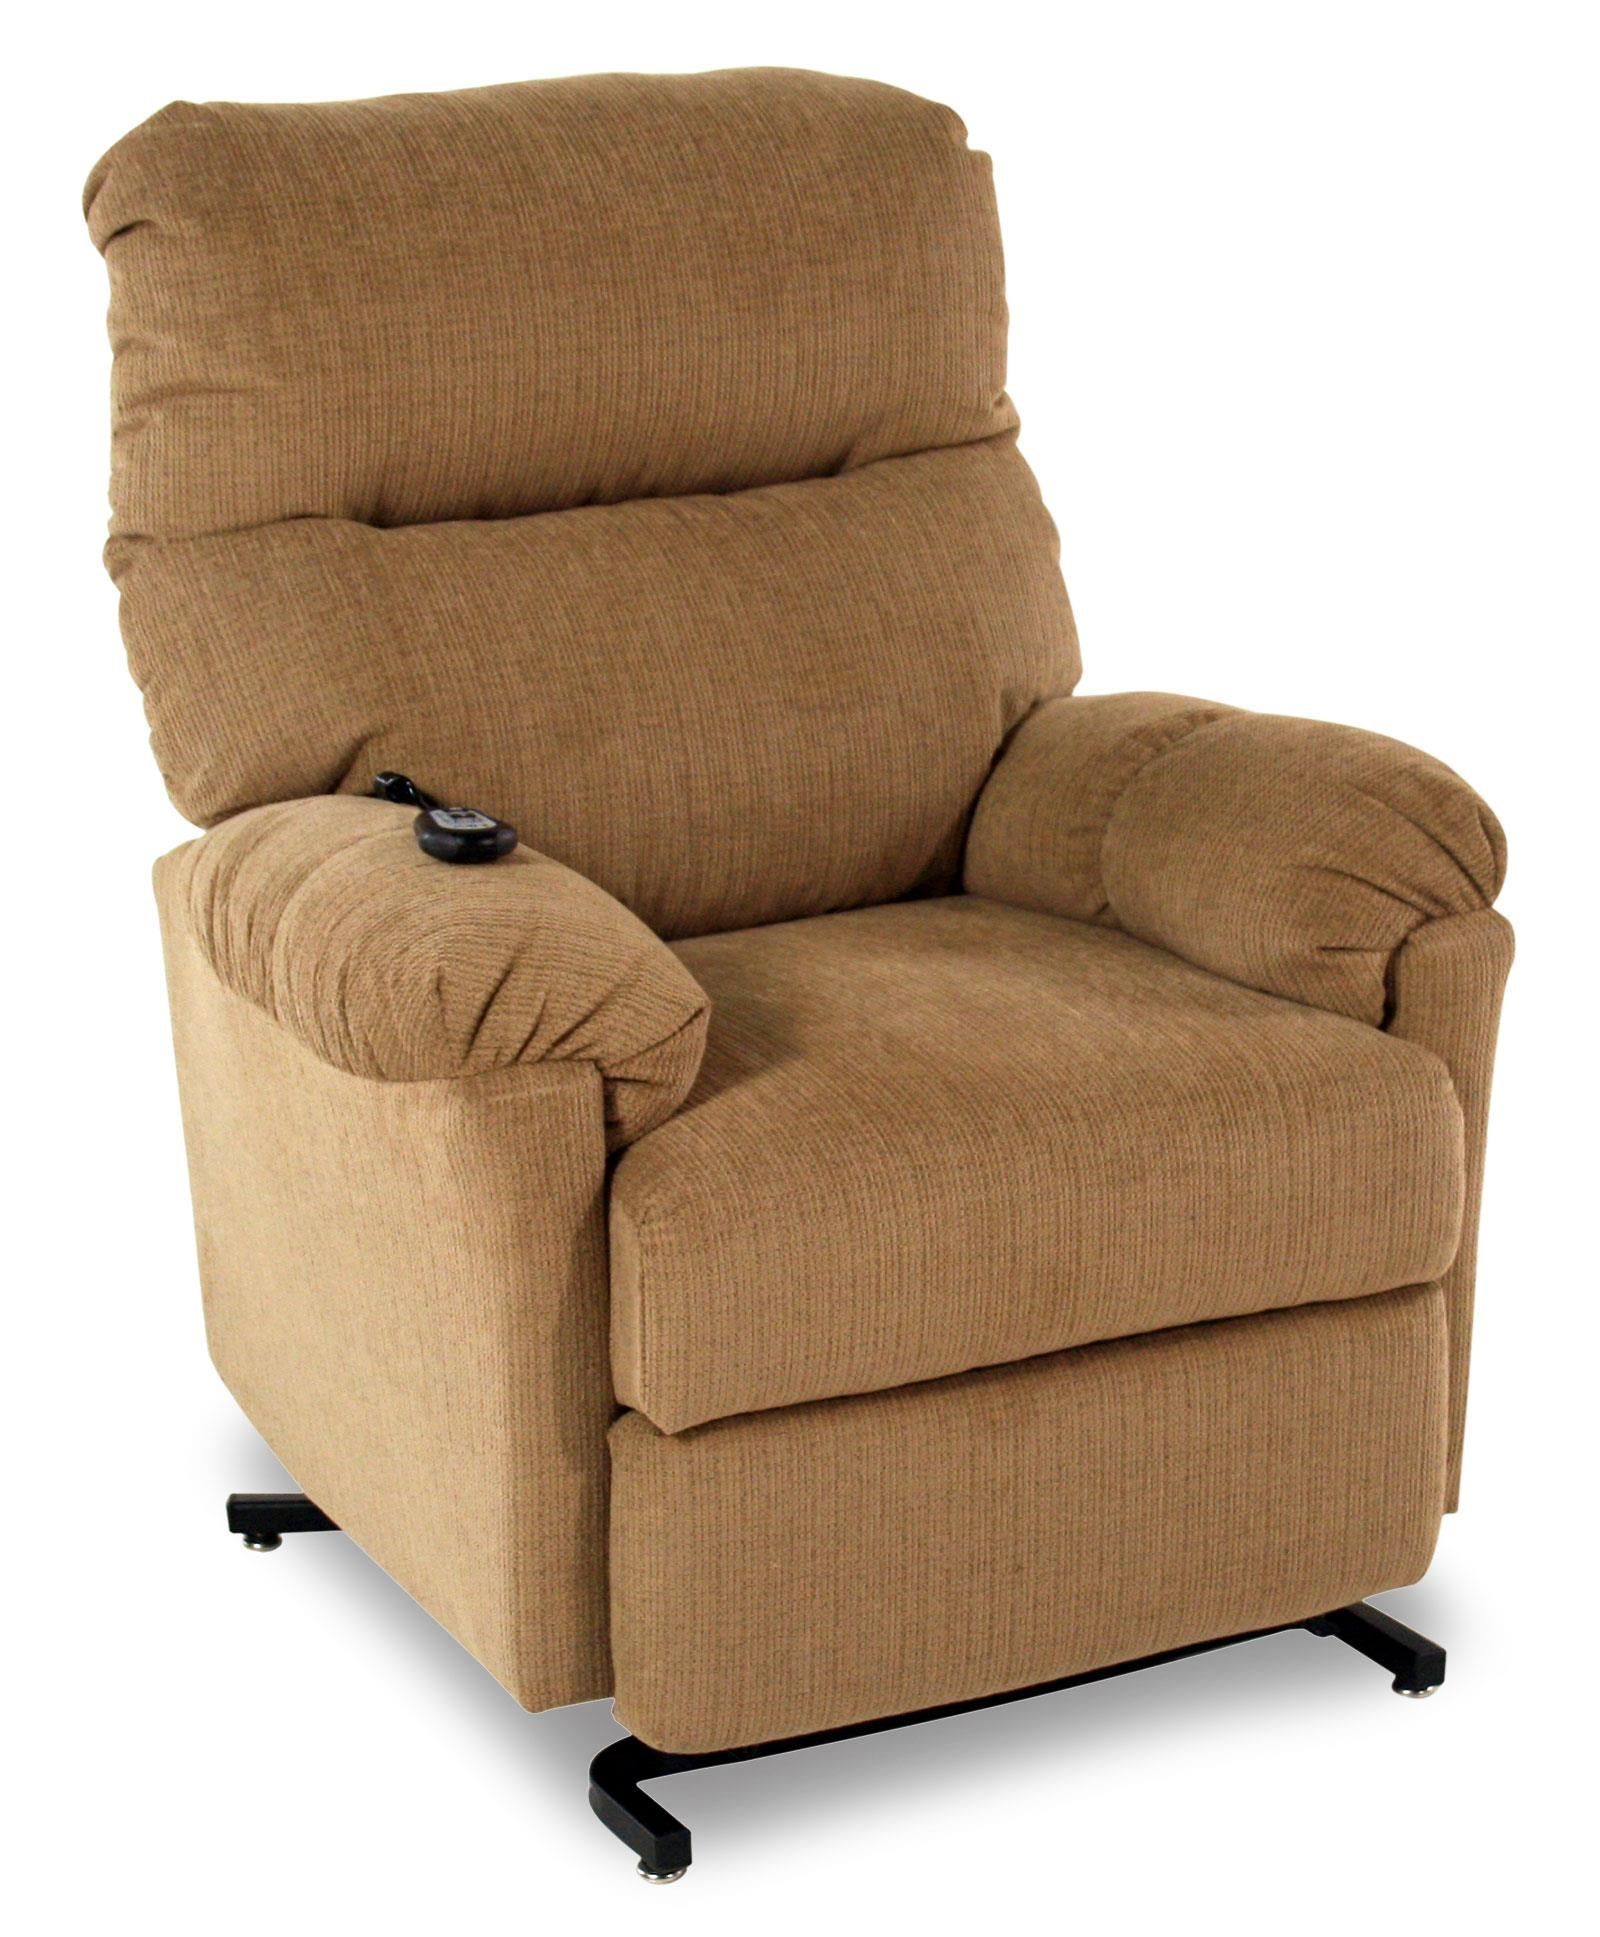 Strange Medium Recliners Power Lift Recliner By Best Home Theyellowbook Wood Chair Design Ideas Theyellowbookinfo